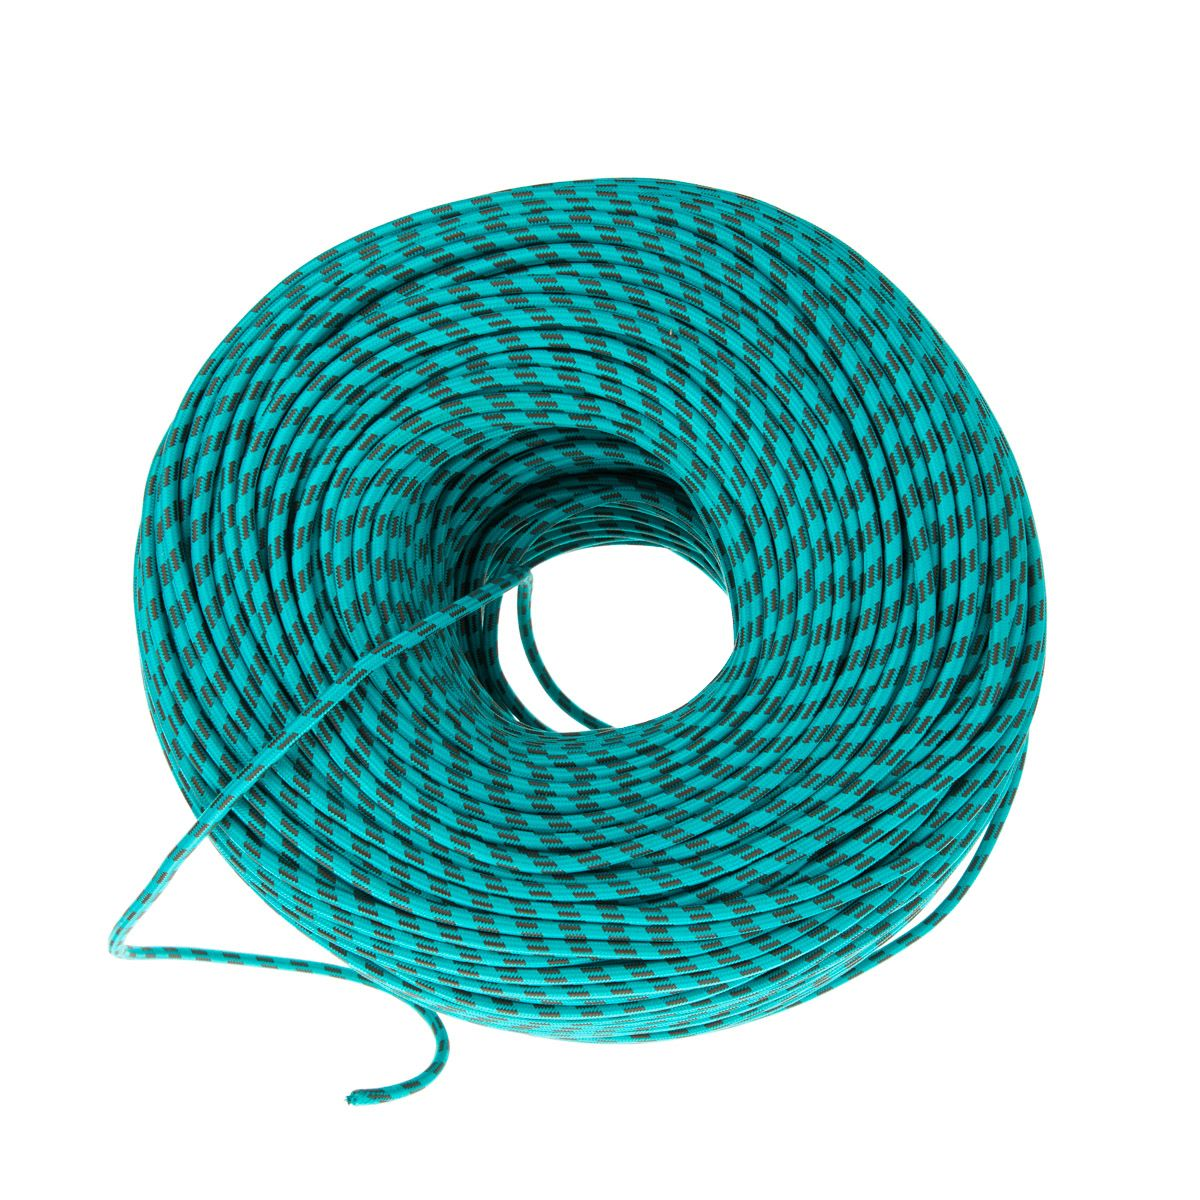 Cloth Covered Electrical Wire - Patterns | Color Cord Company